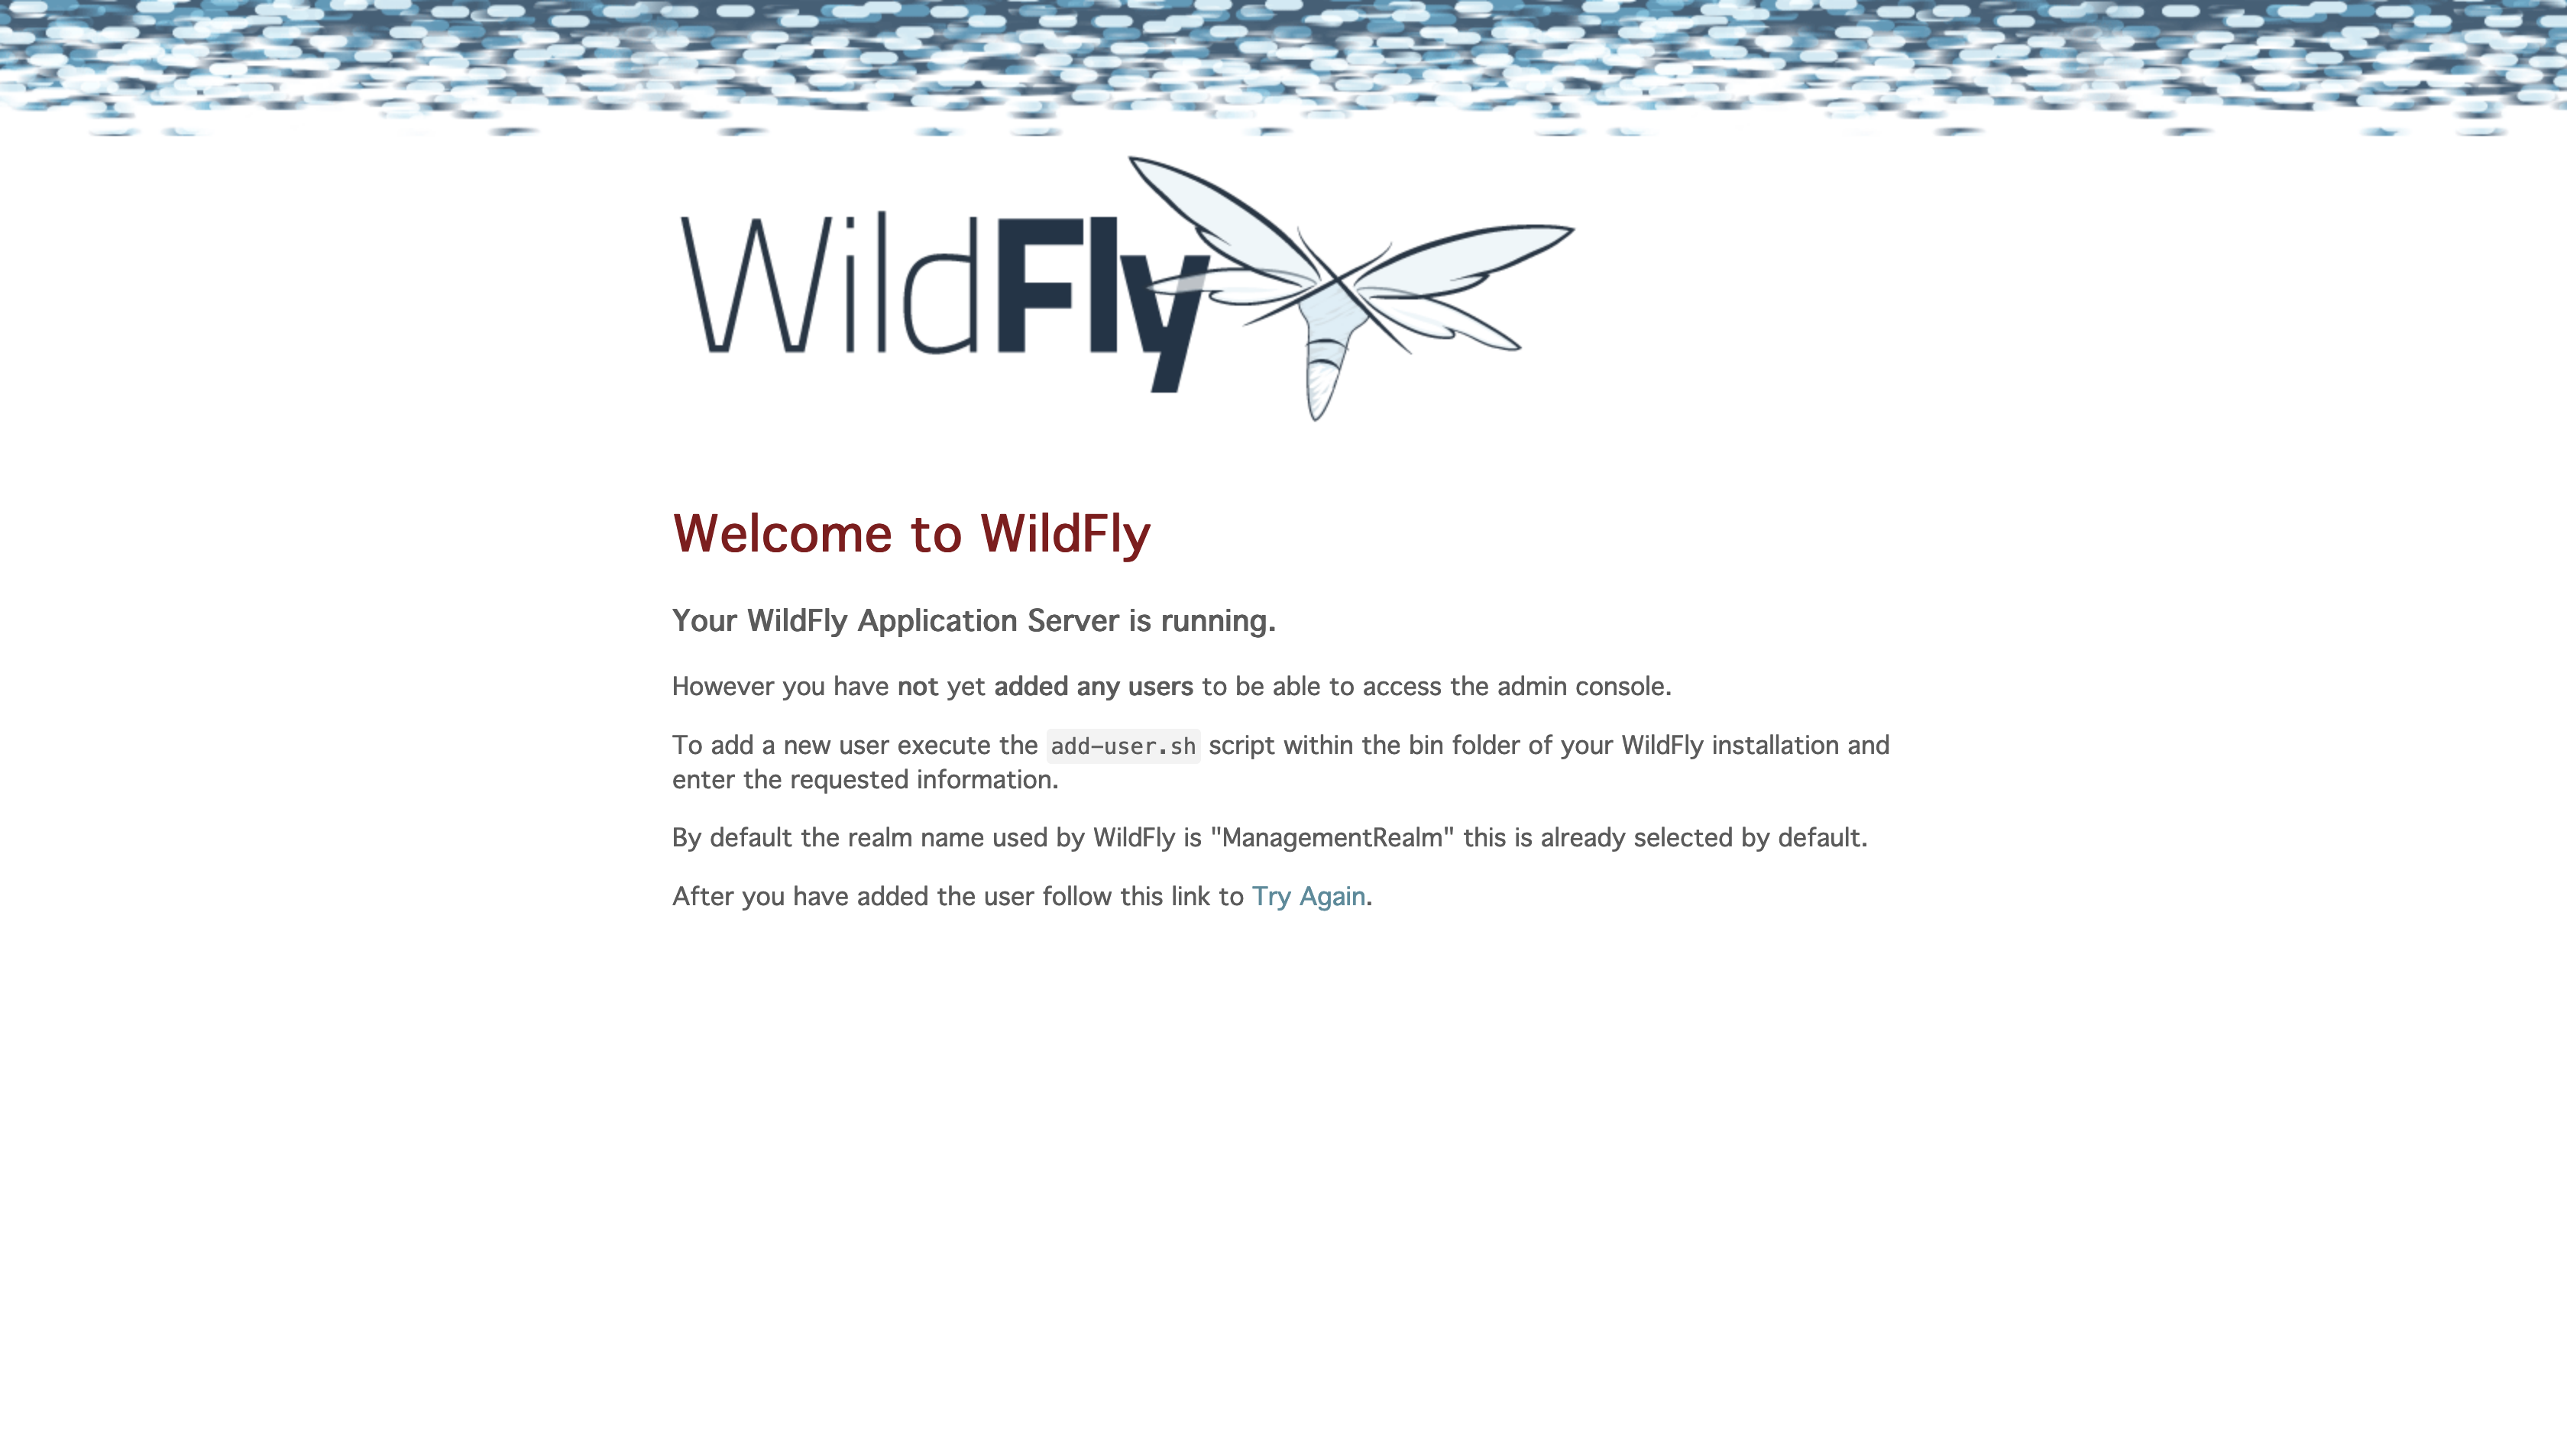 WFCORE-4438] No welcome page in WildFly 17 - JBoss Issue Tracker